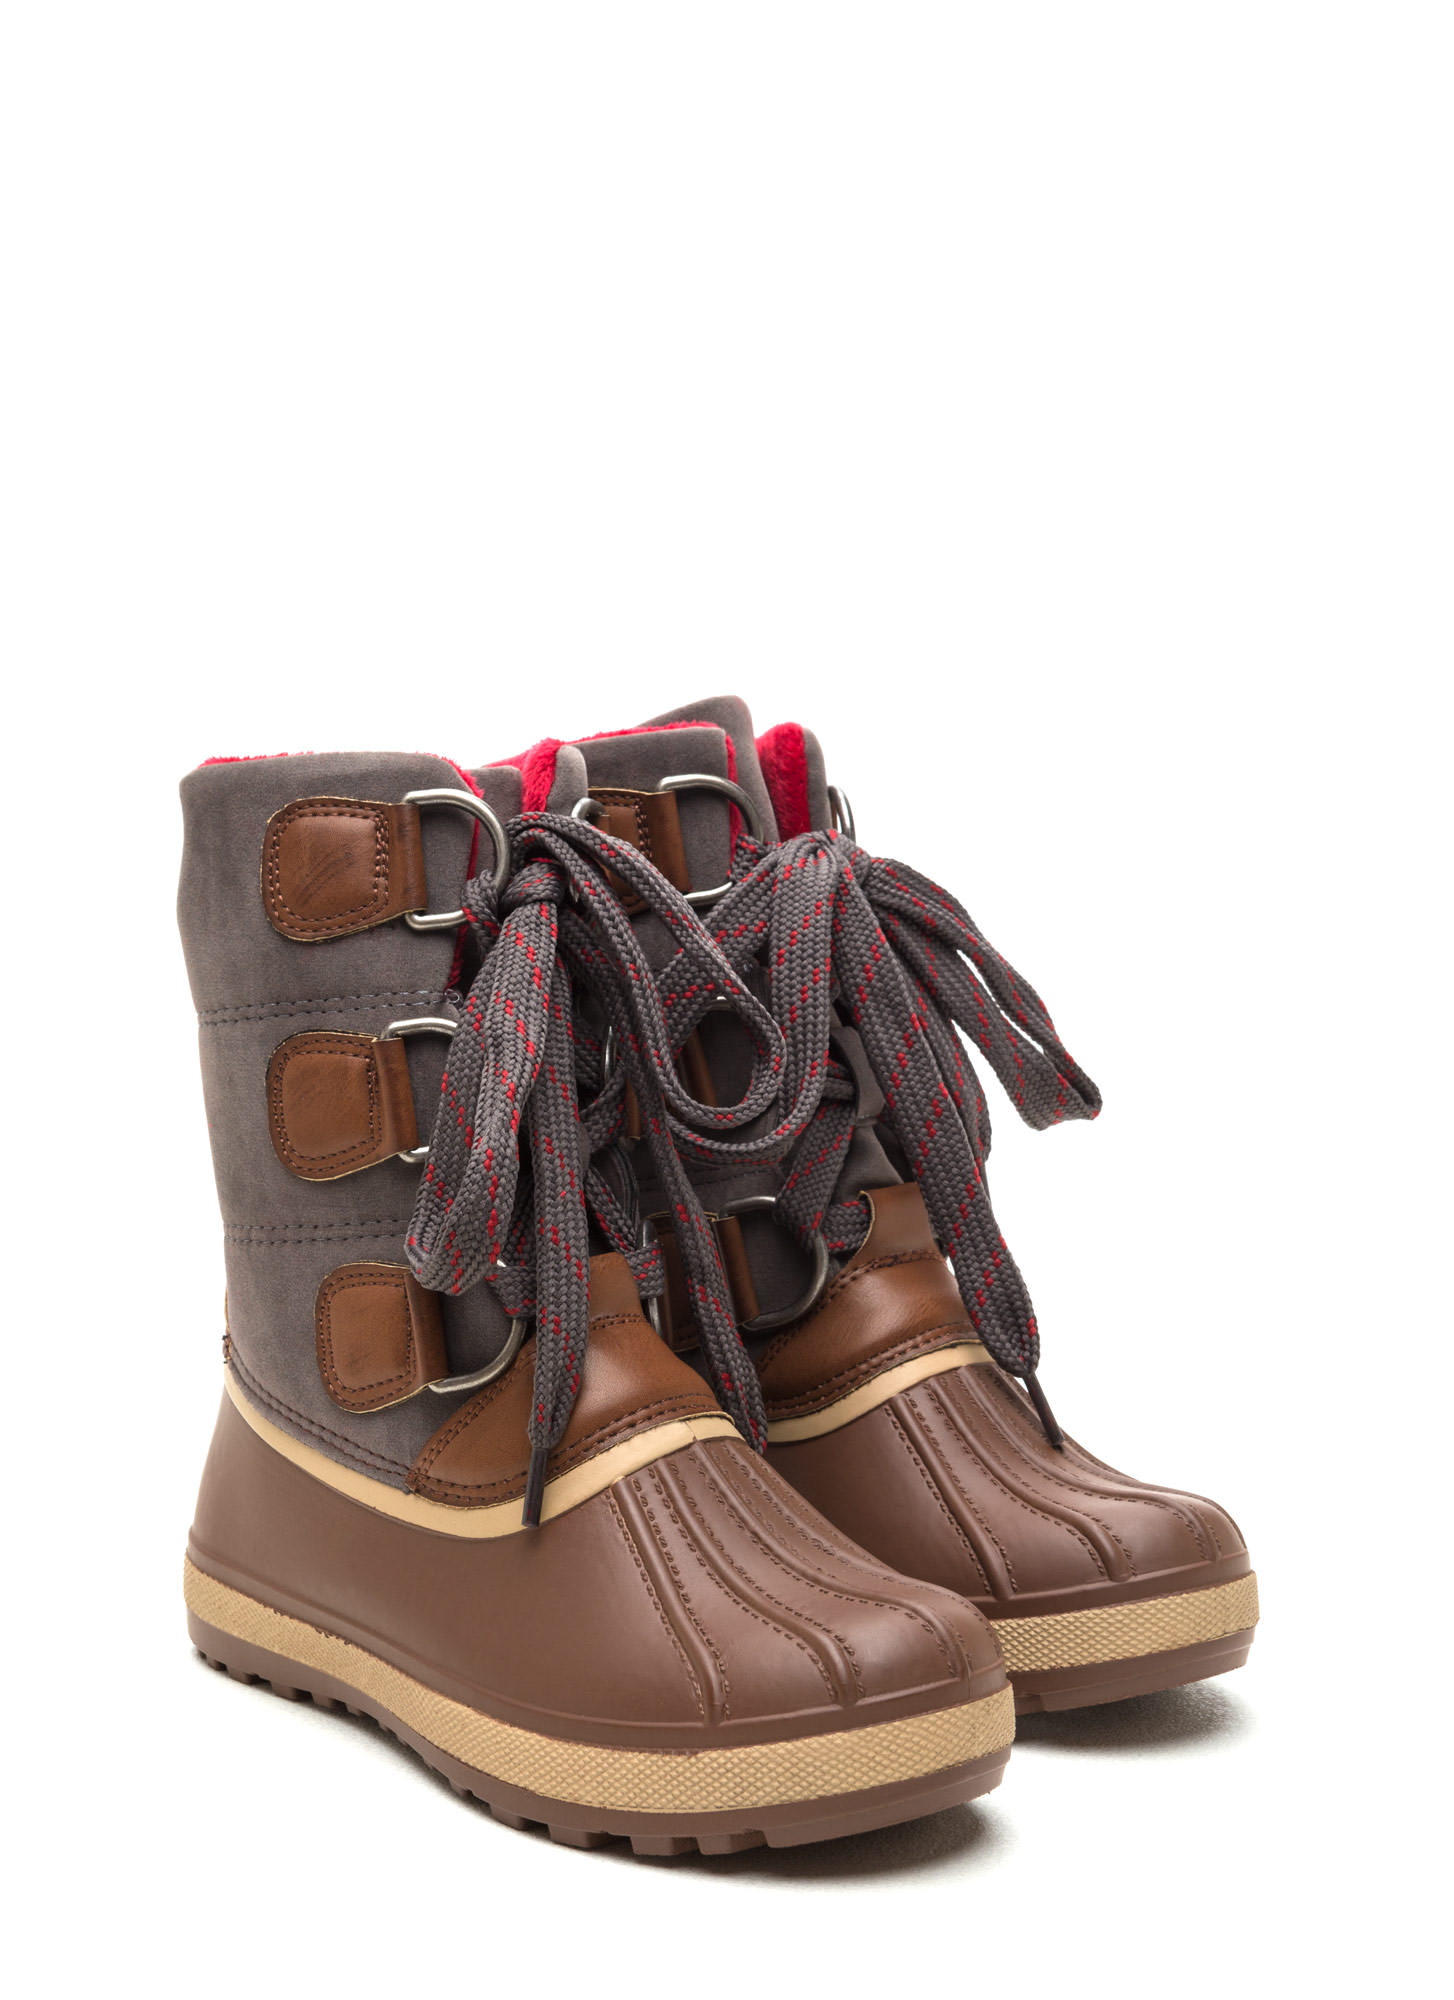 Snowed In Mixed Media Duck Boots CHESTNUT